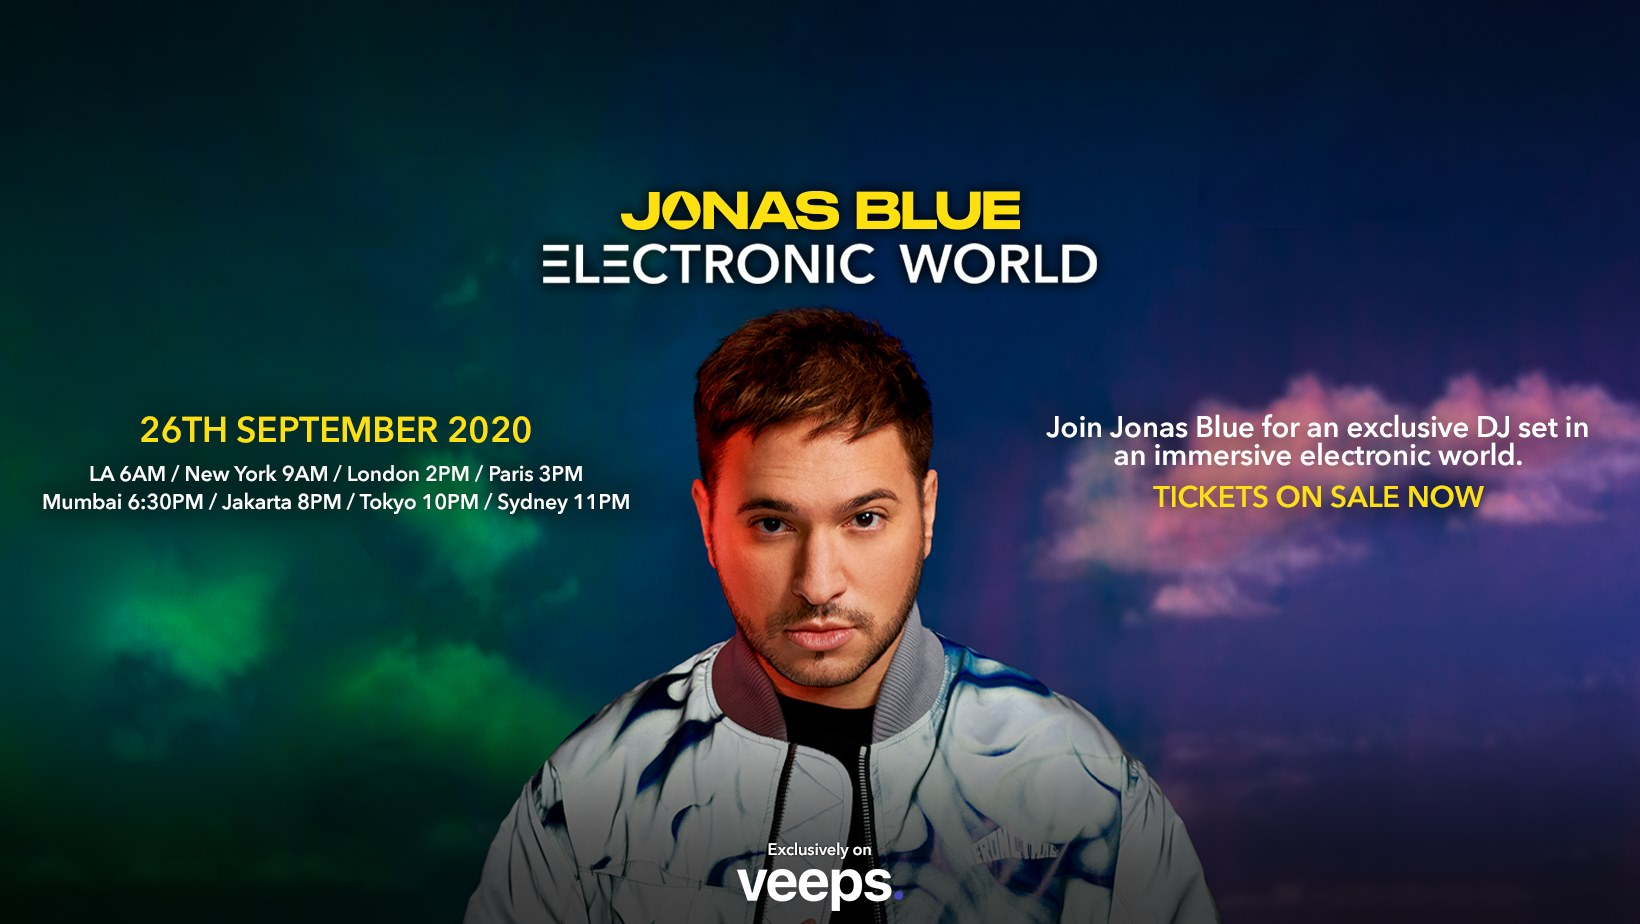 'Electronic World' livestream by Jonas Blue exclusively on Veeps